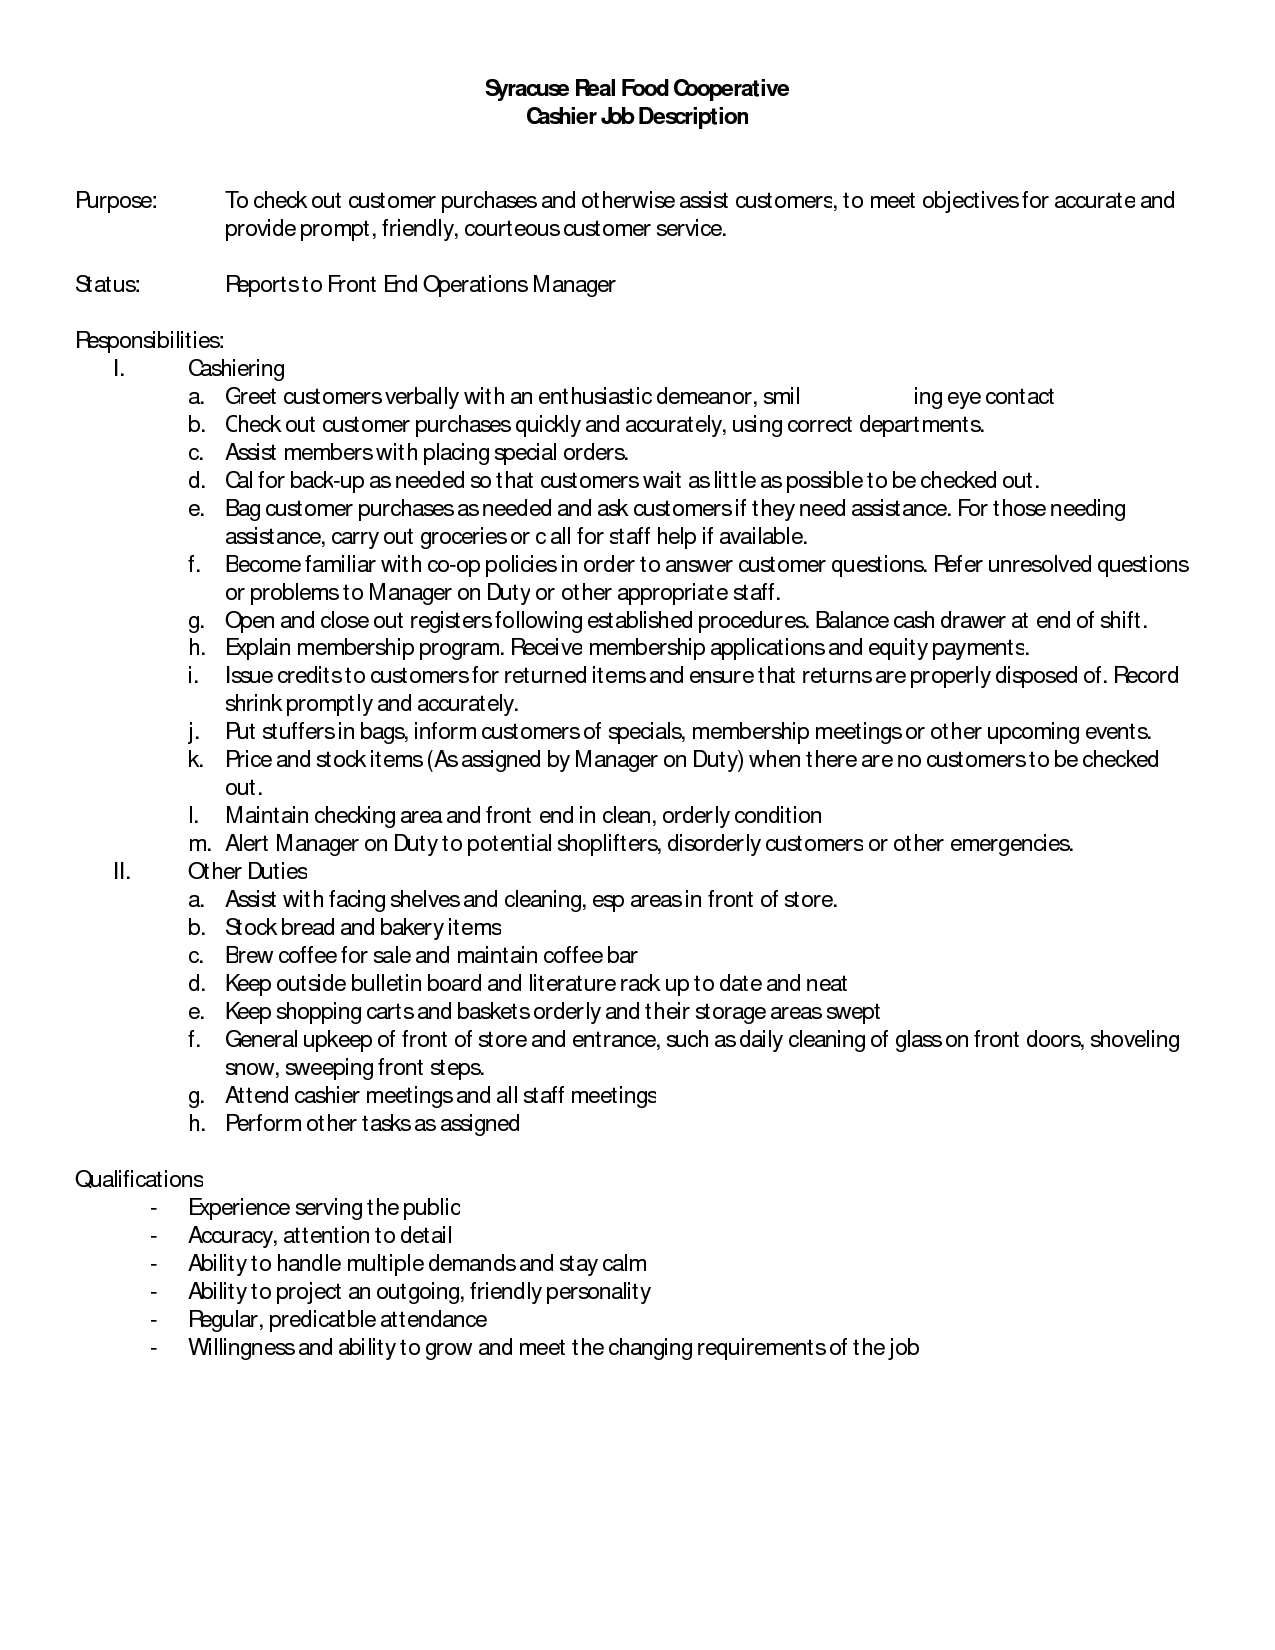 cashier description resume cashier description for